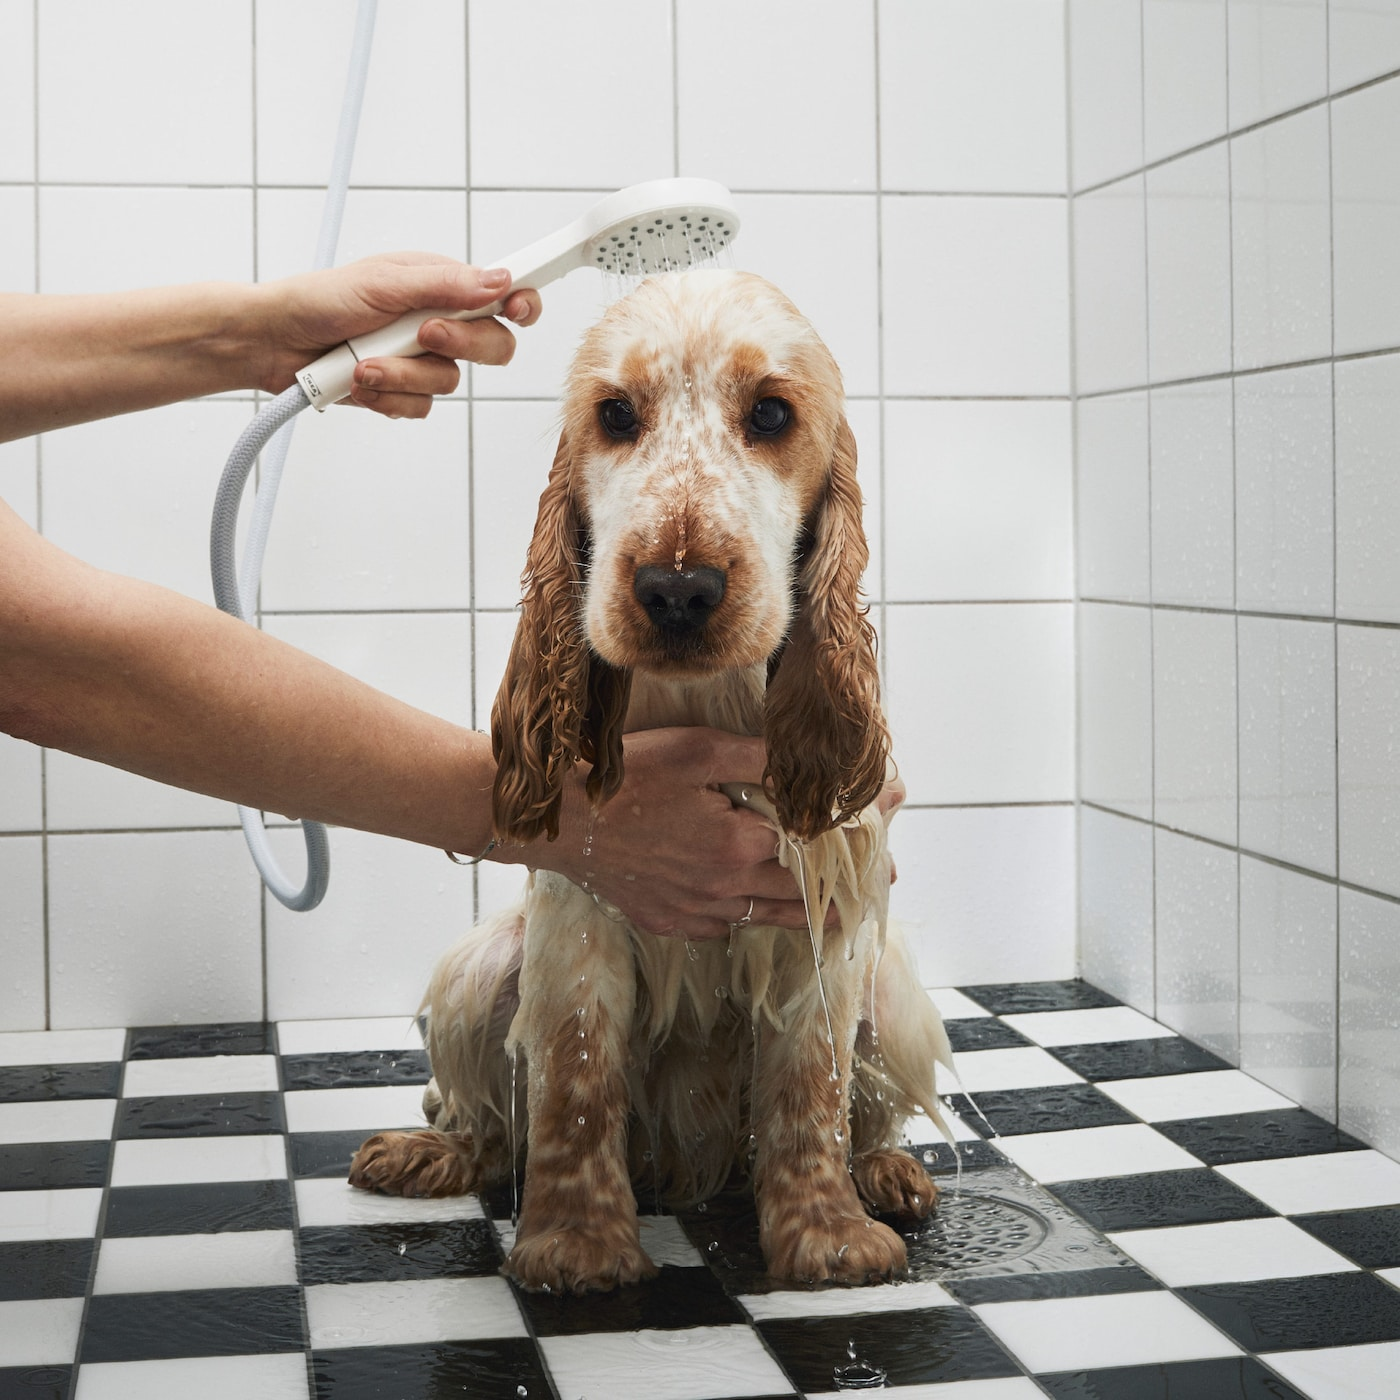 A bemused dog is being showered using a handheld shower head.